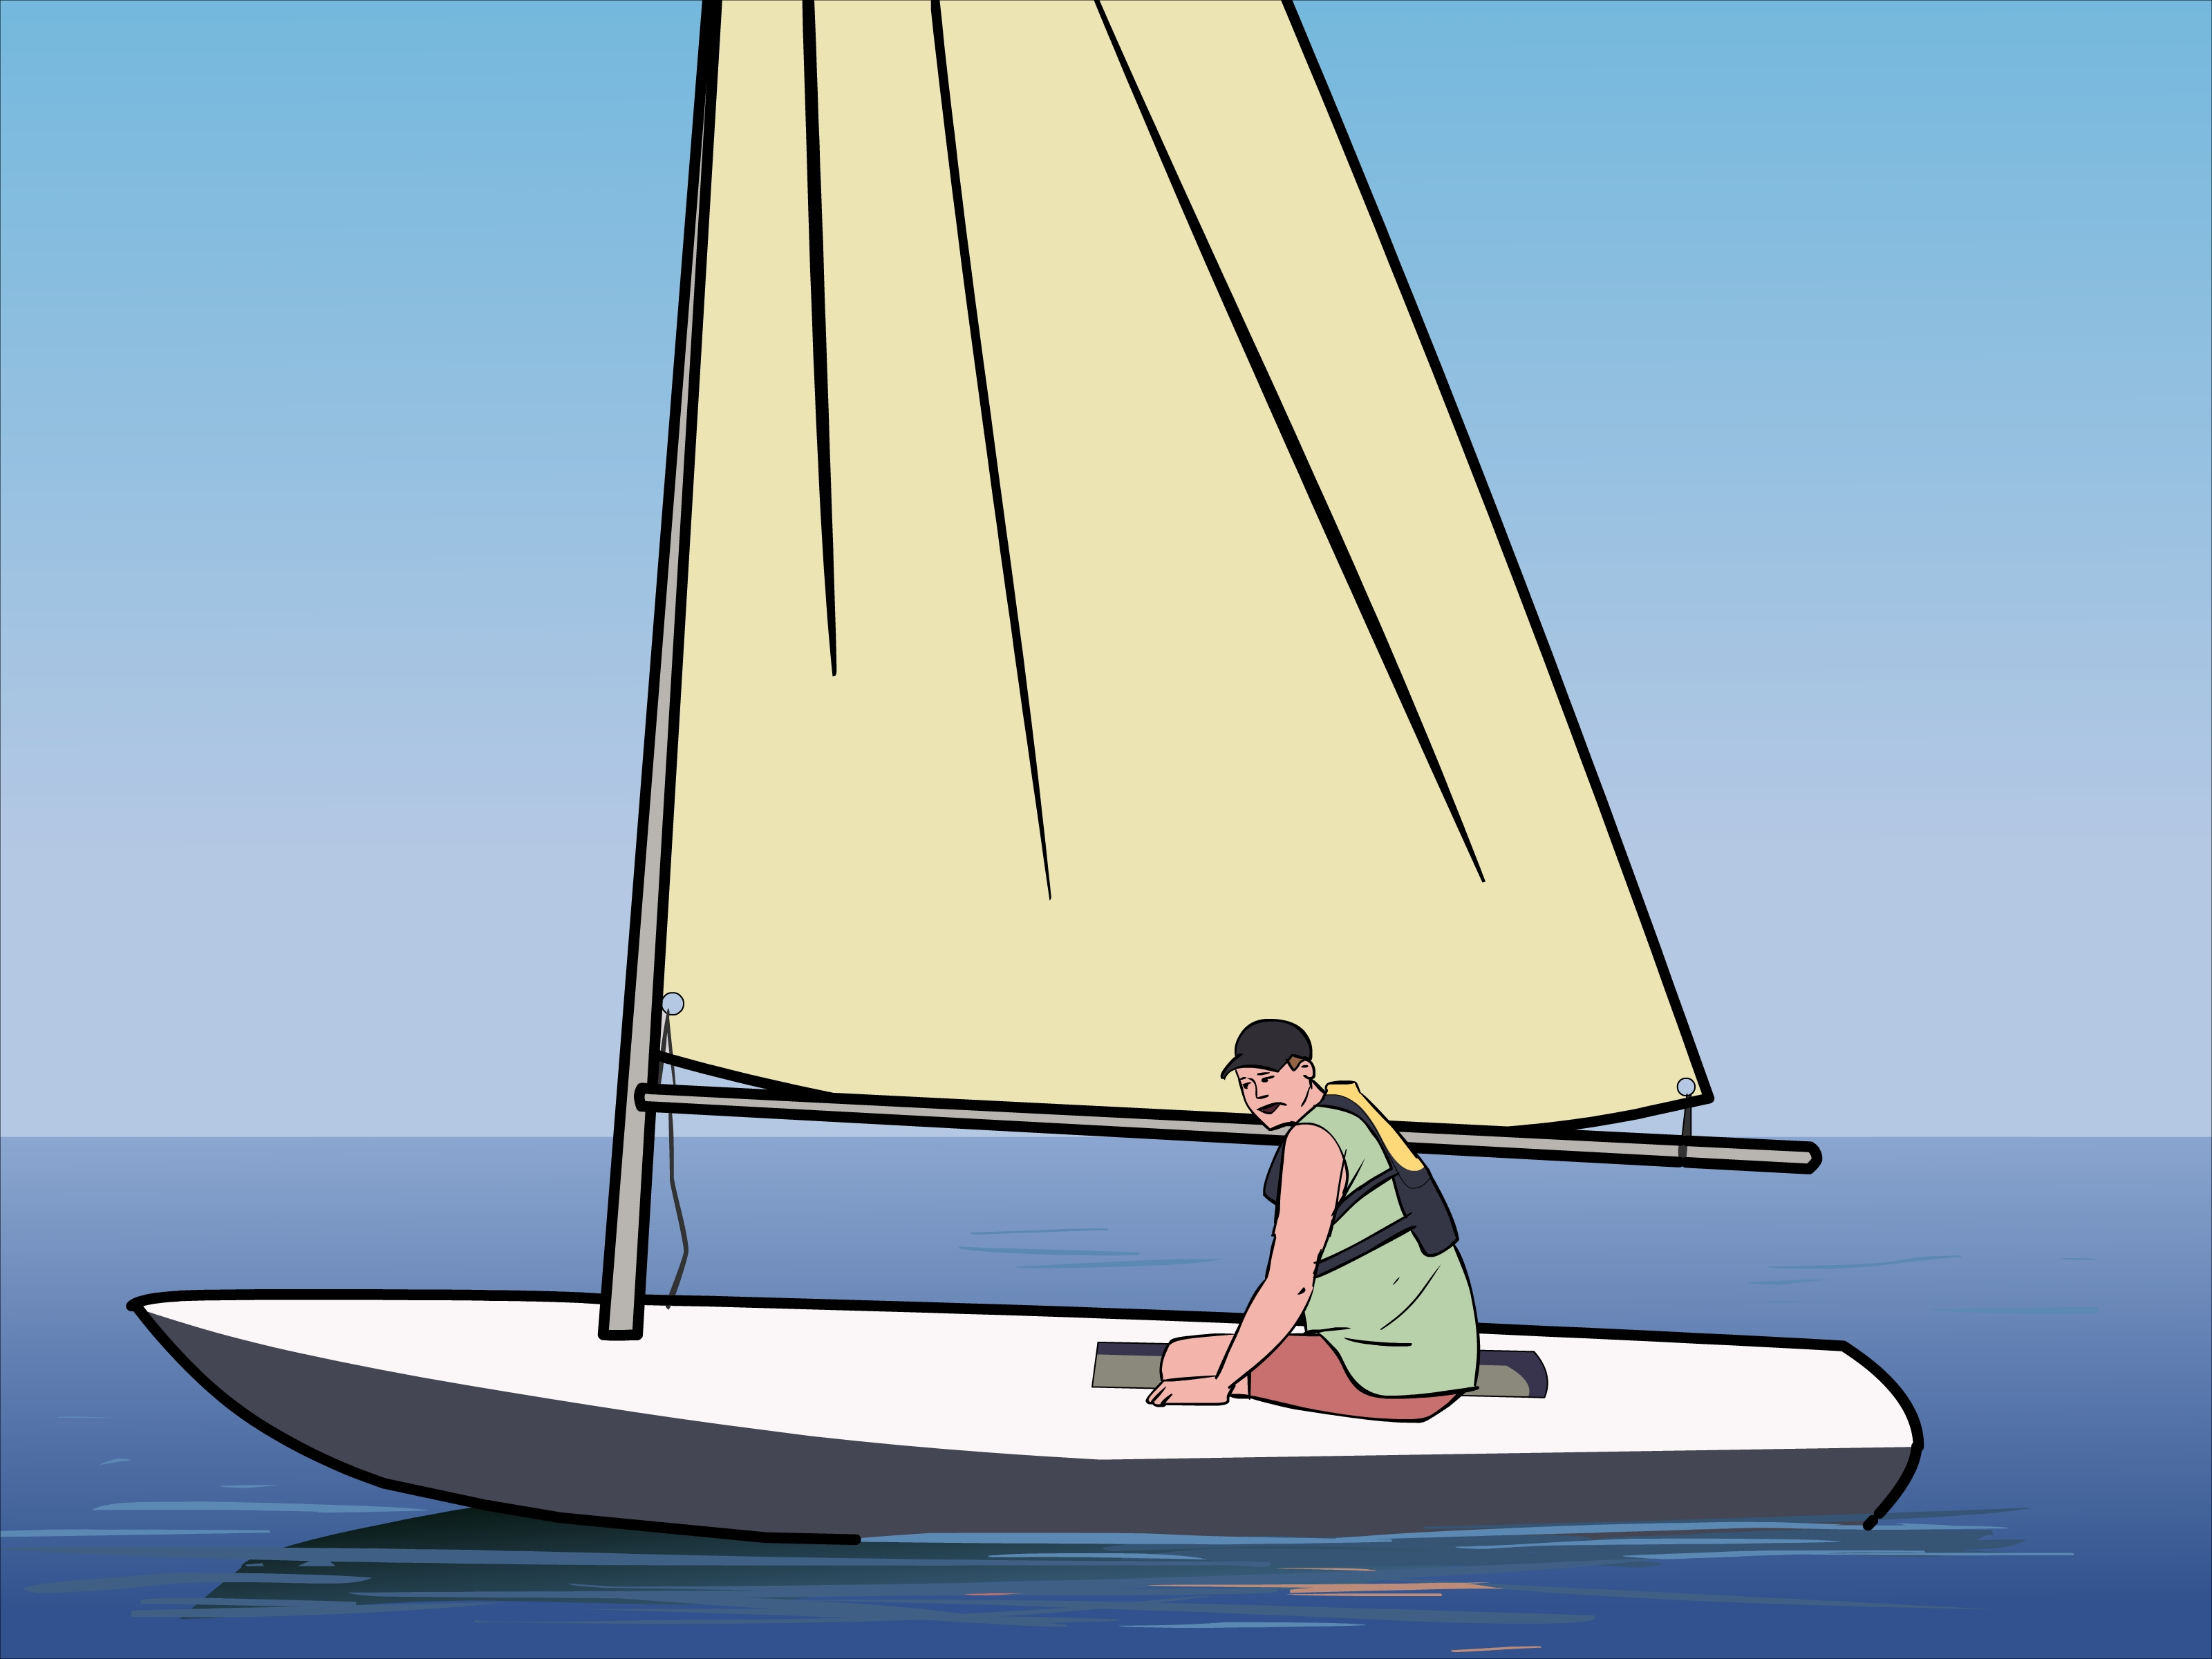 How To Rig A Laser Sailboat 12 Steps With Pictures